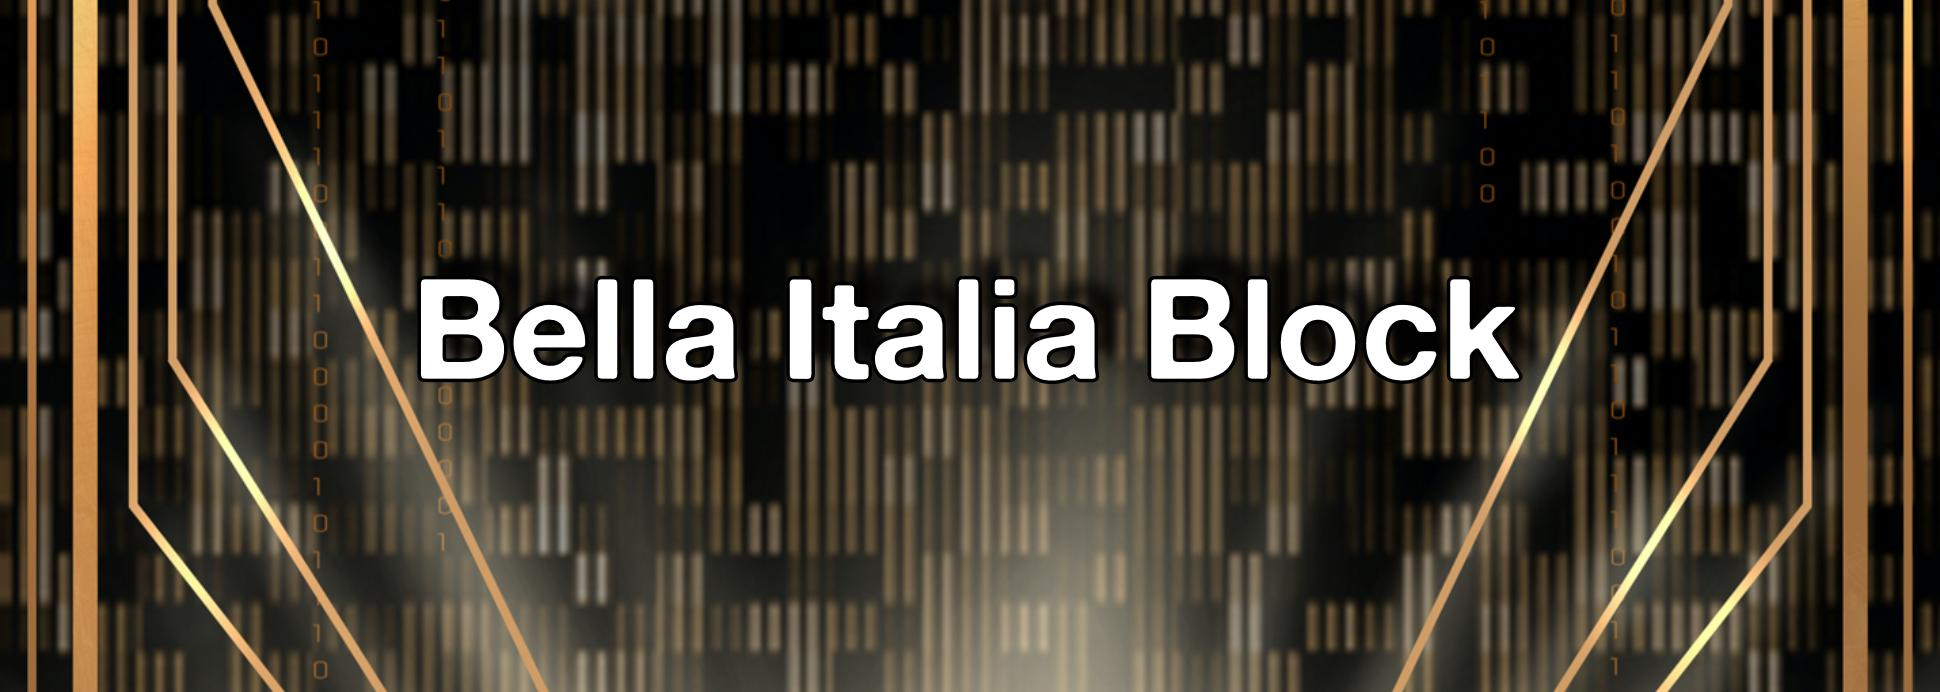 Bella Italia Block